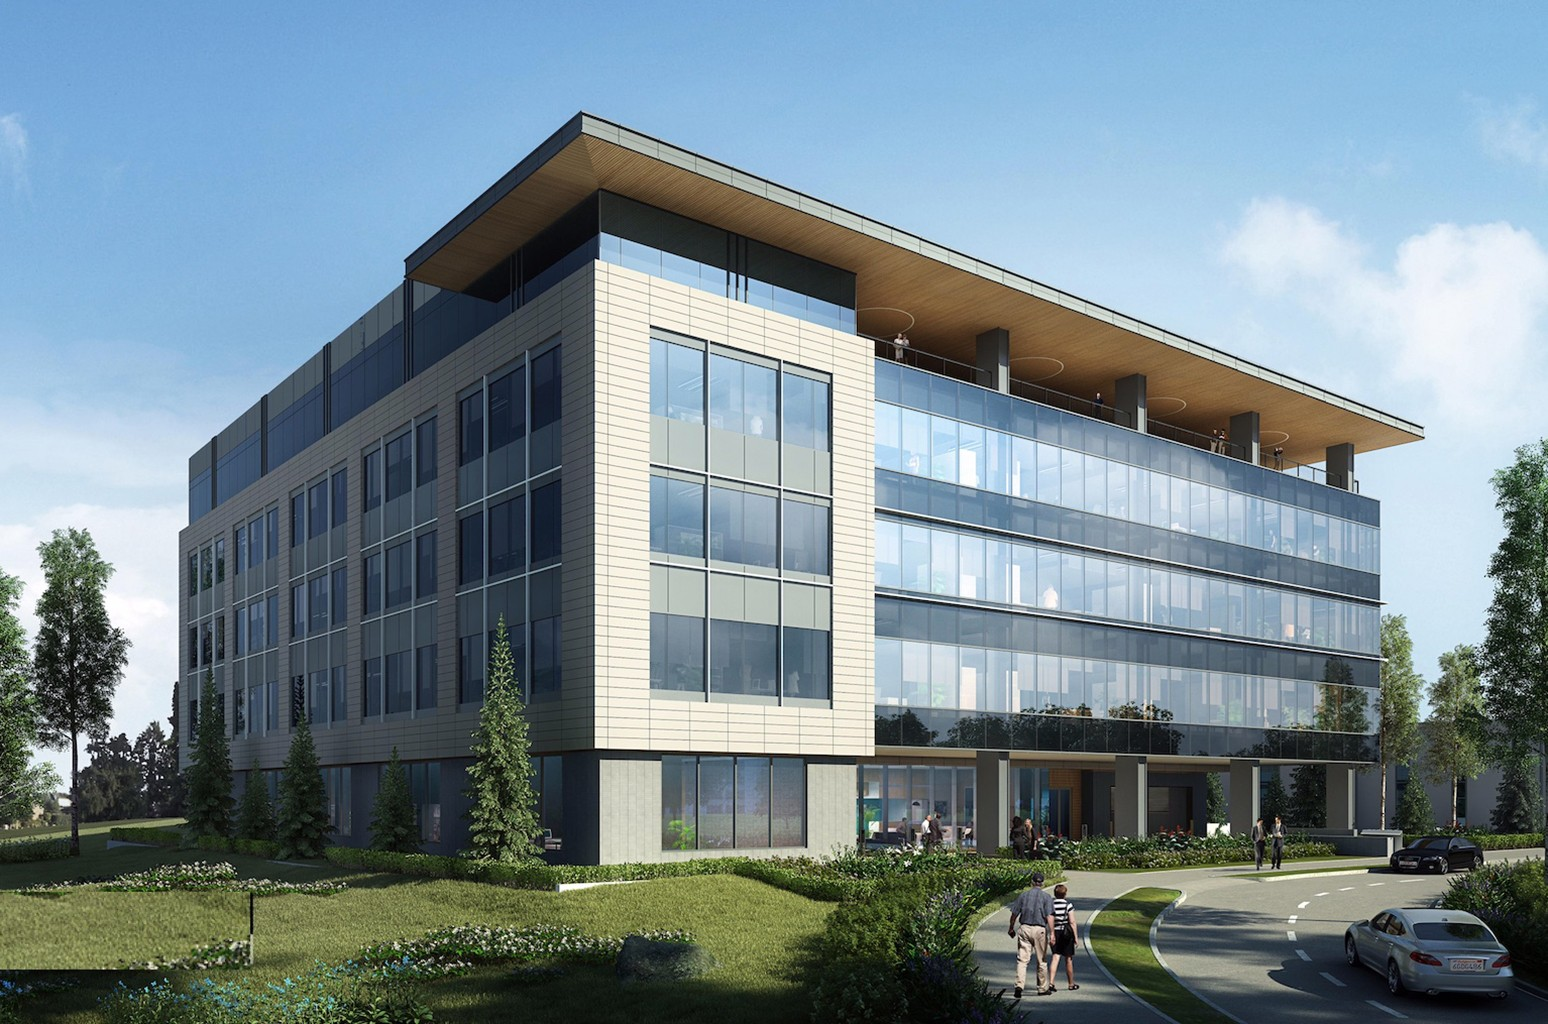 A rendering of BMG's new 120,000-square-foot building located on Nashville's Music Row.